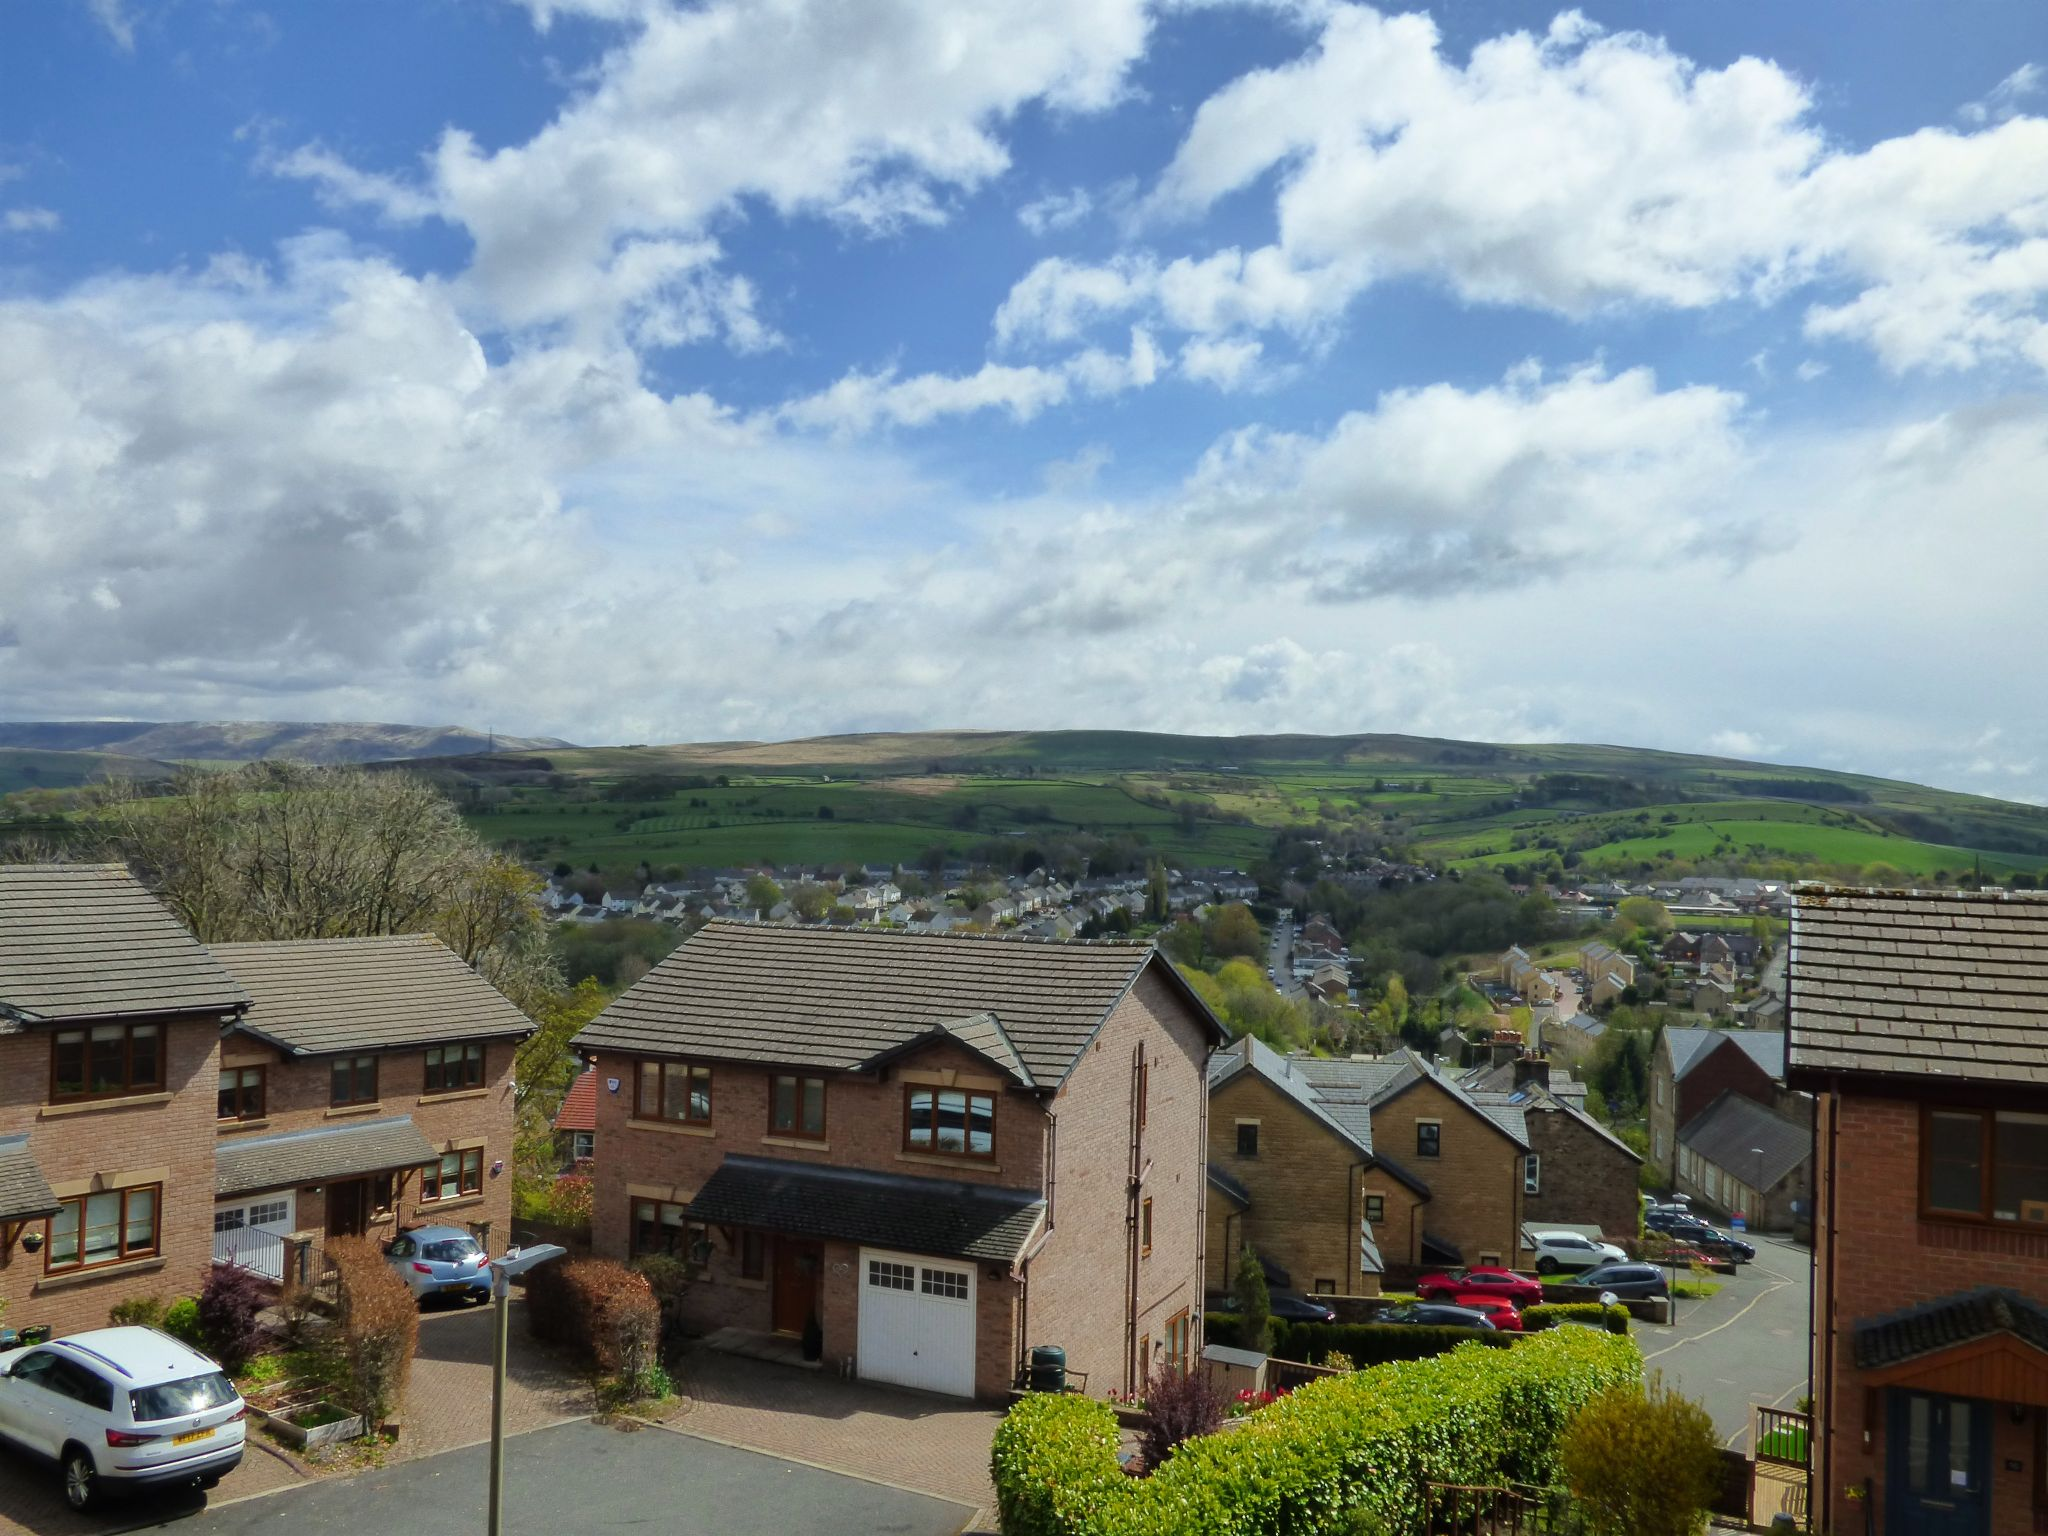 4 Bedroom Semi-detached House For Sale - Bedroom One View